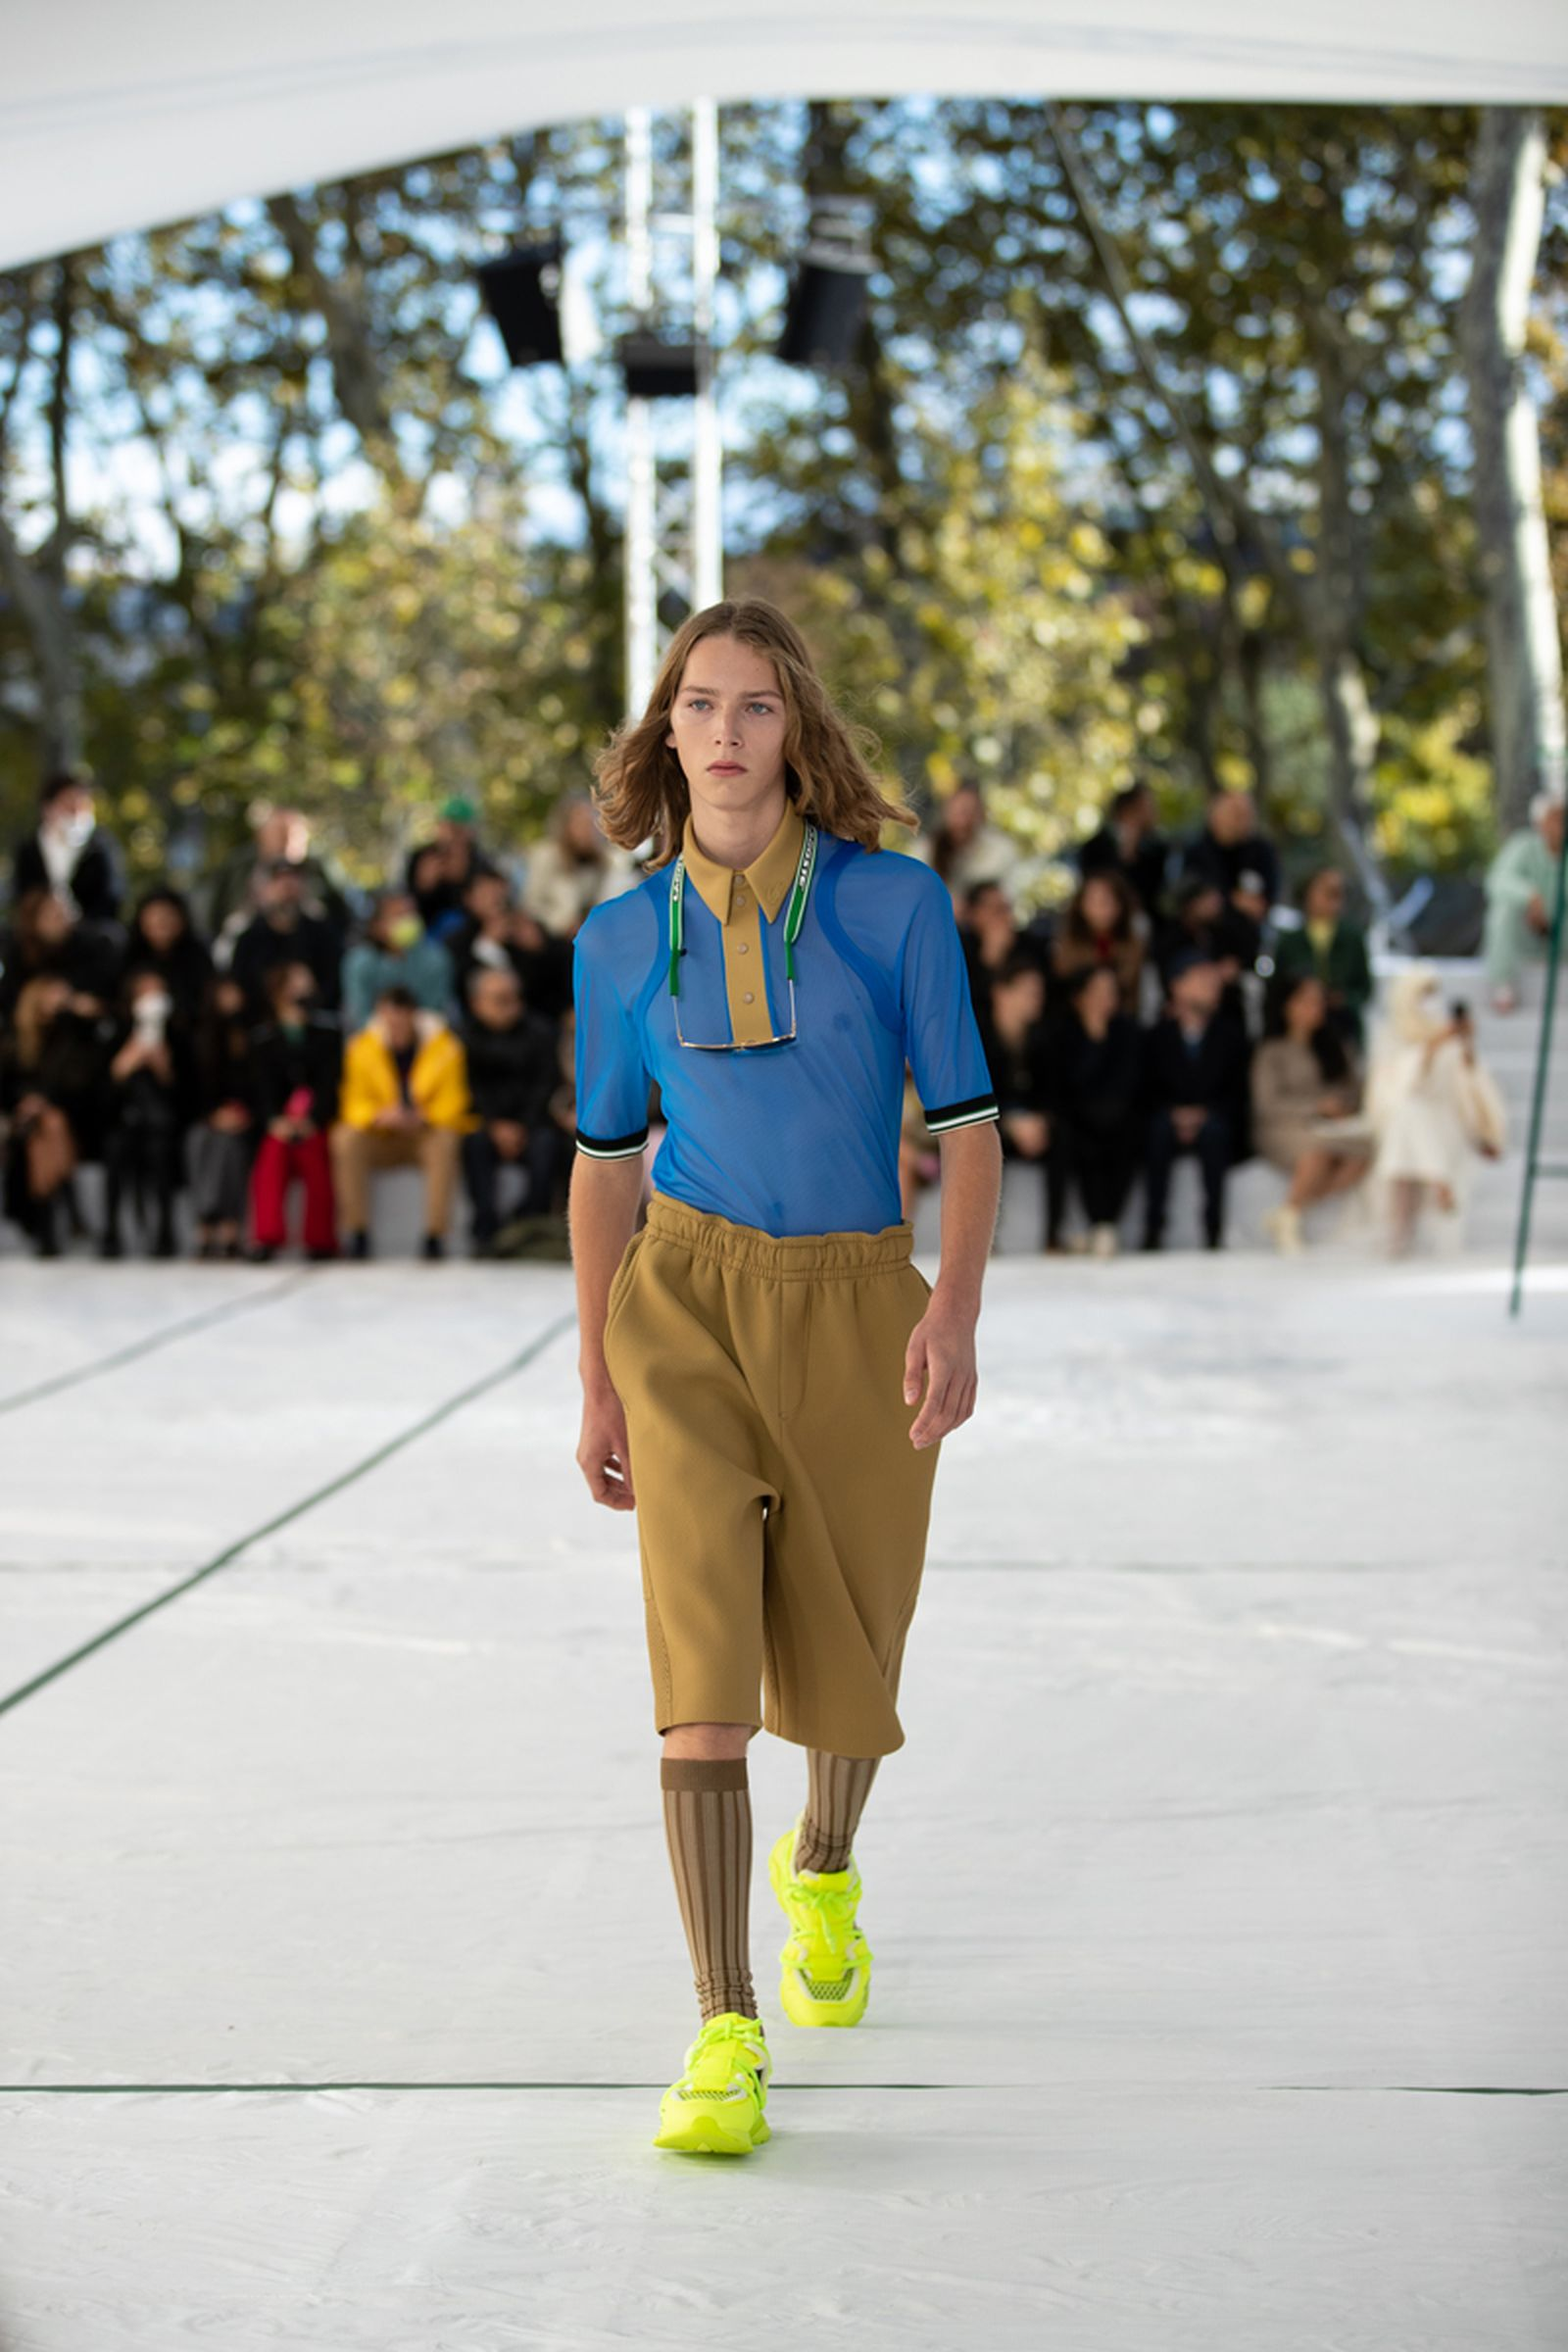 lacoste-spring-summer-2022-collection (26)